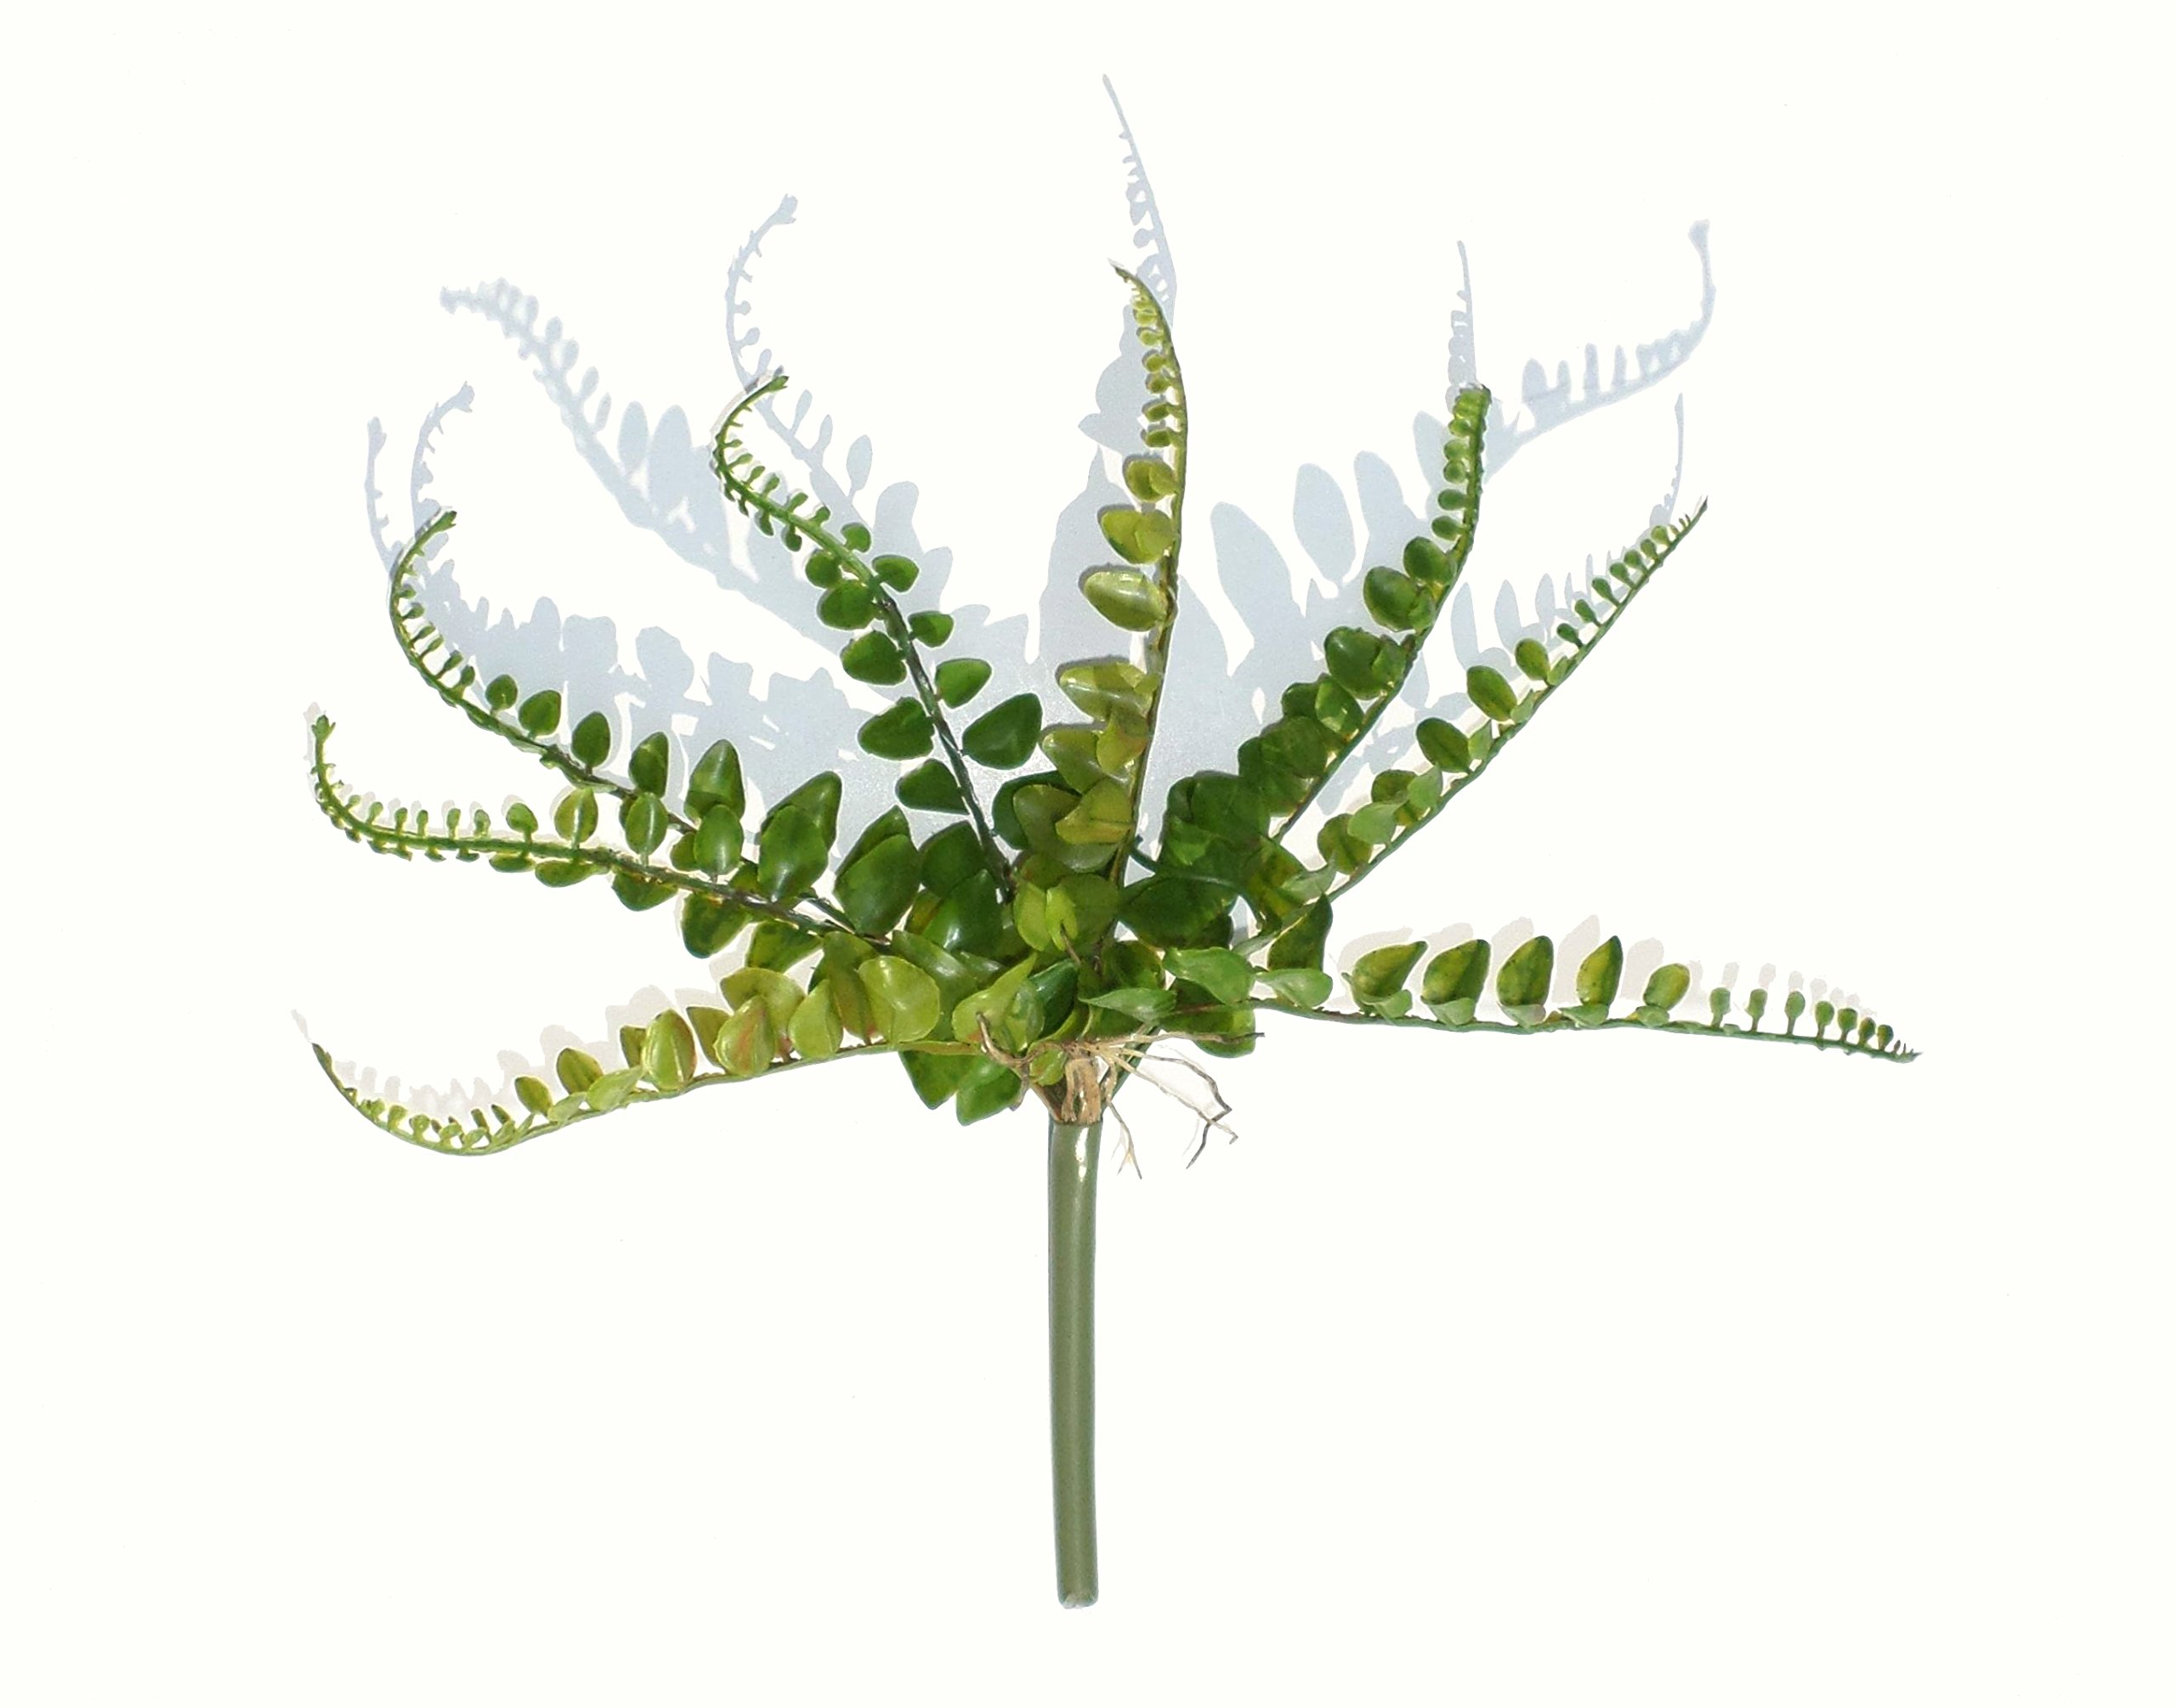 4-x-10-Button-Ferns-Artificial-Plants